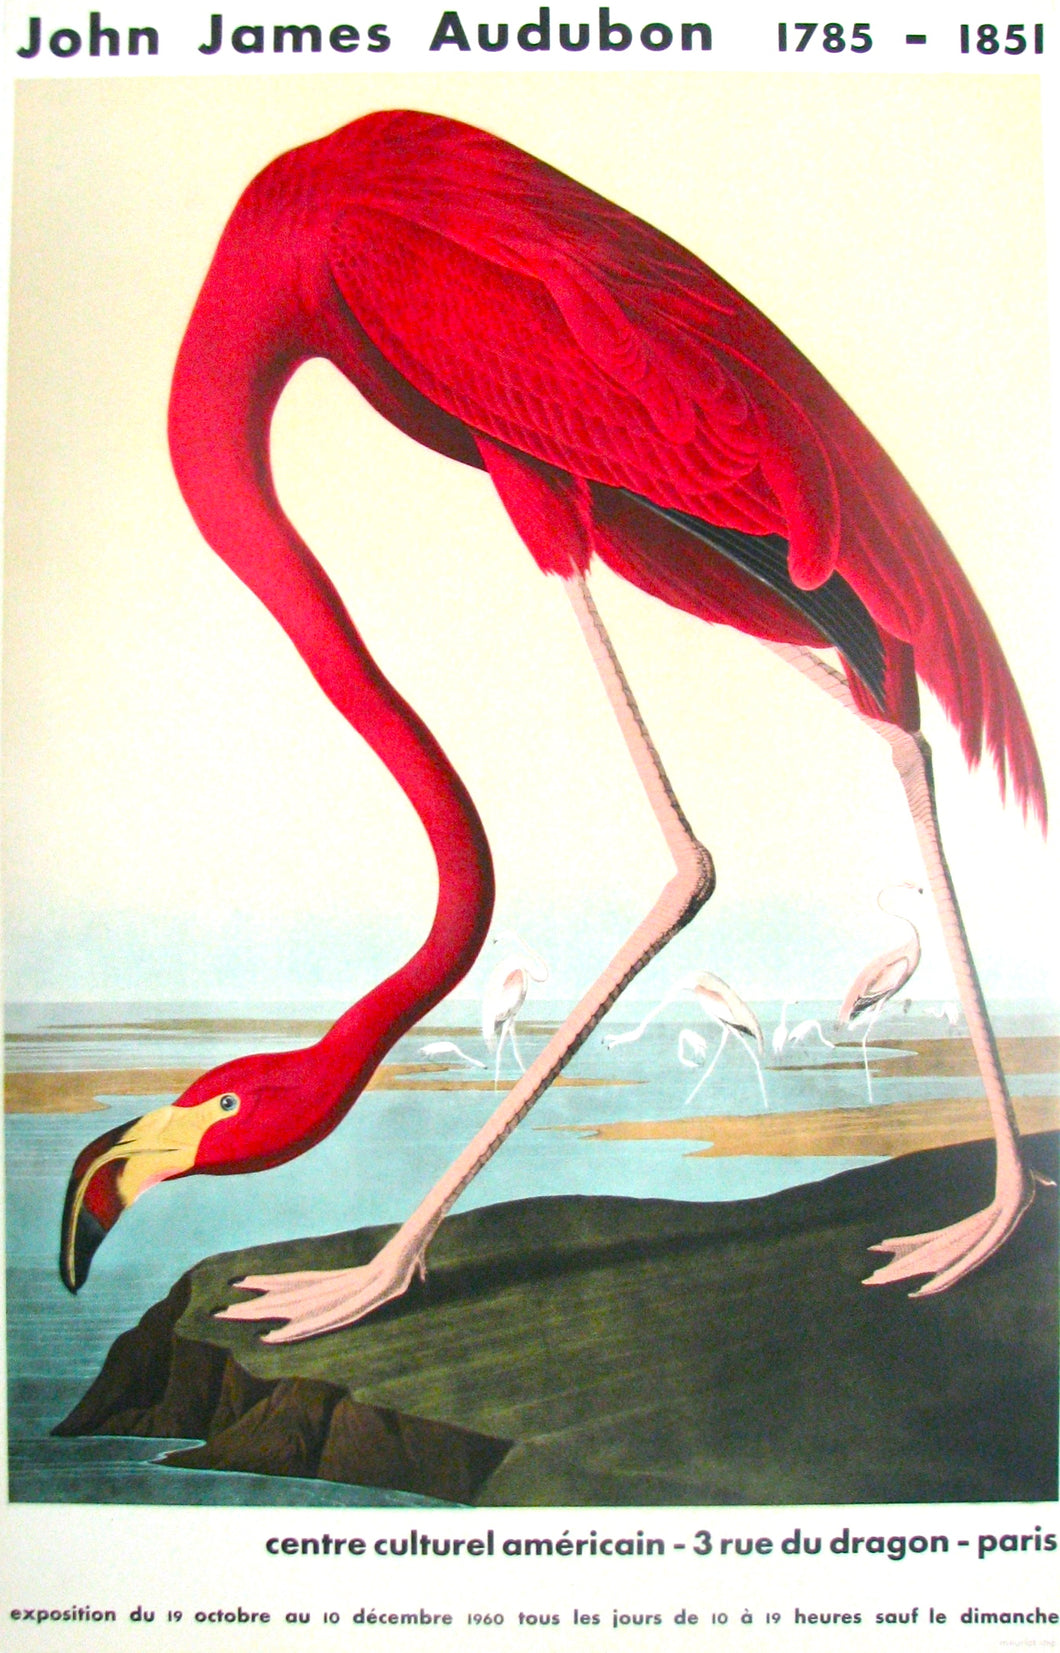 American Flamingo by John James Audubon 1960